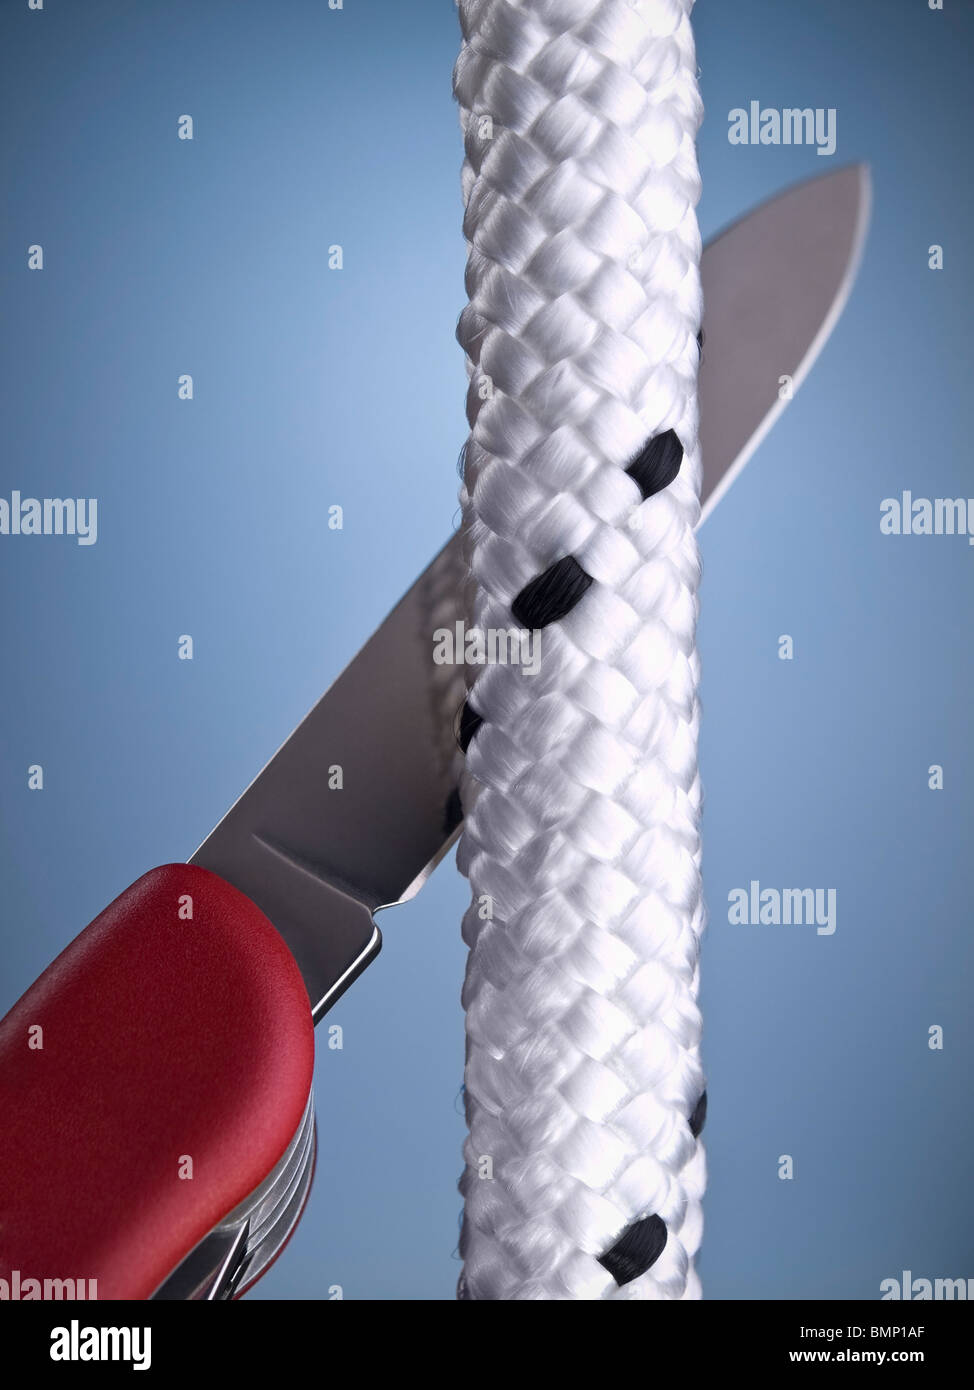 A red Swiss army knife is about to cut a fiber rope. - Stock Image